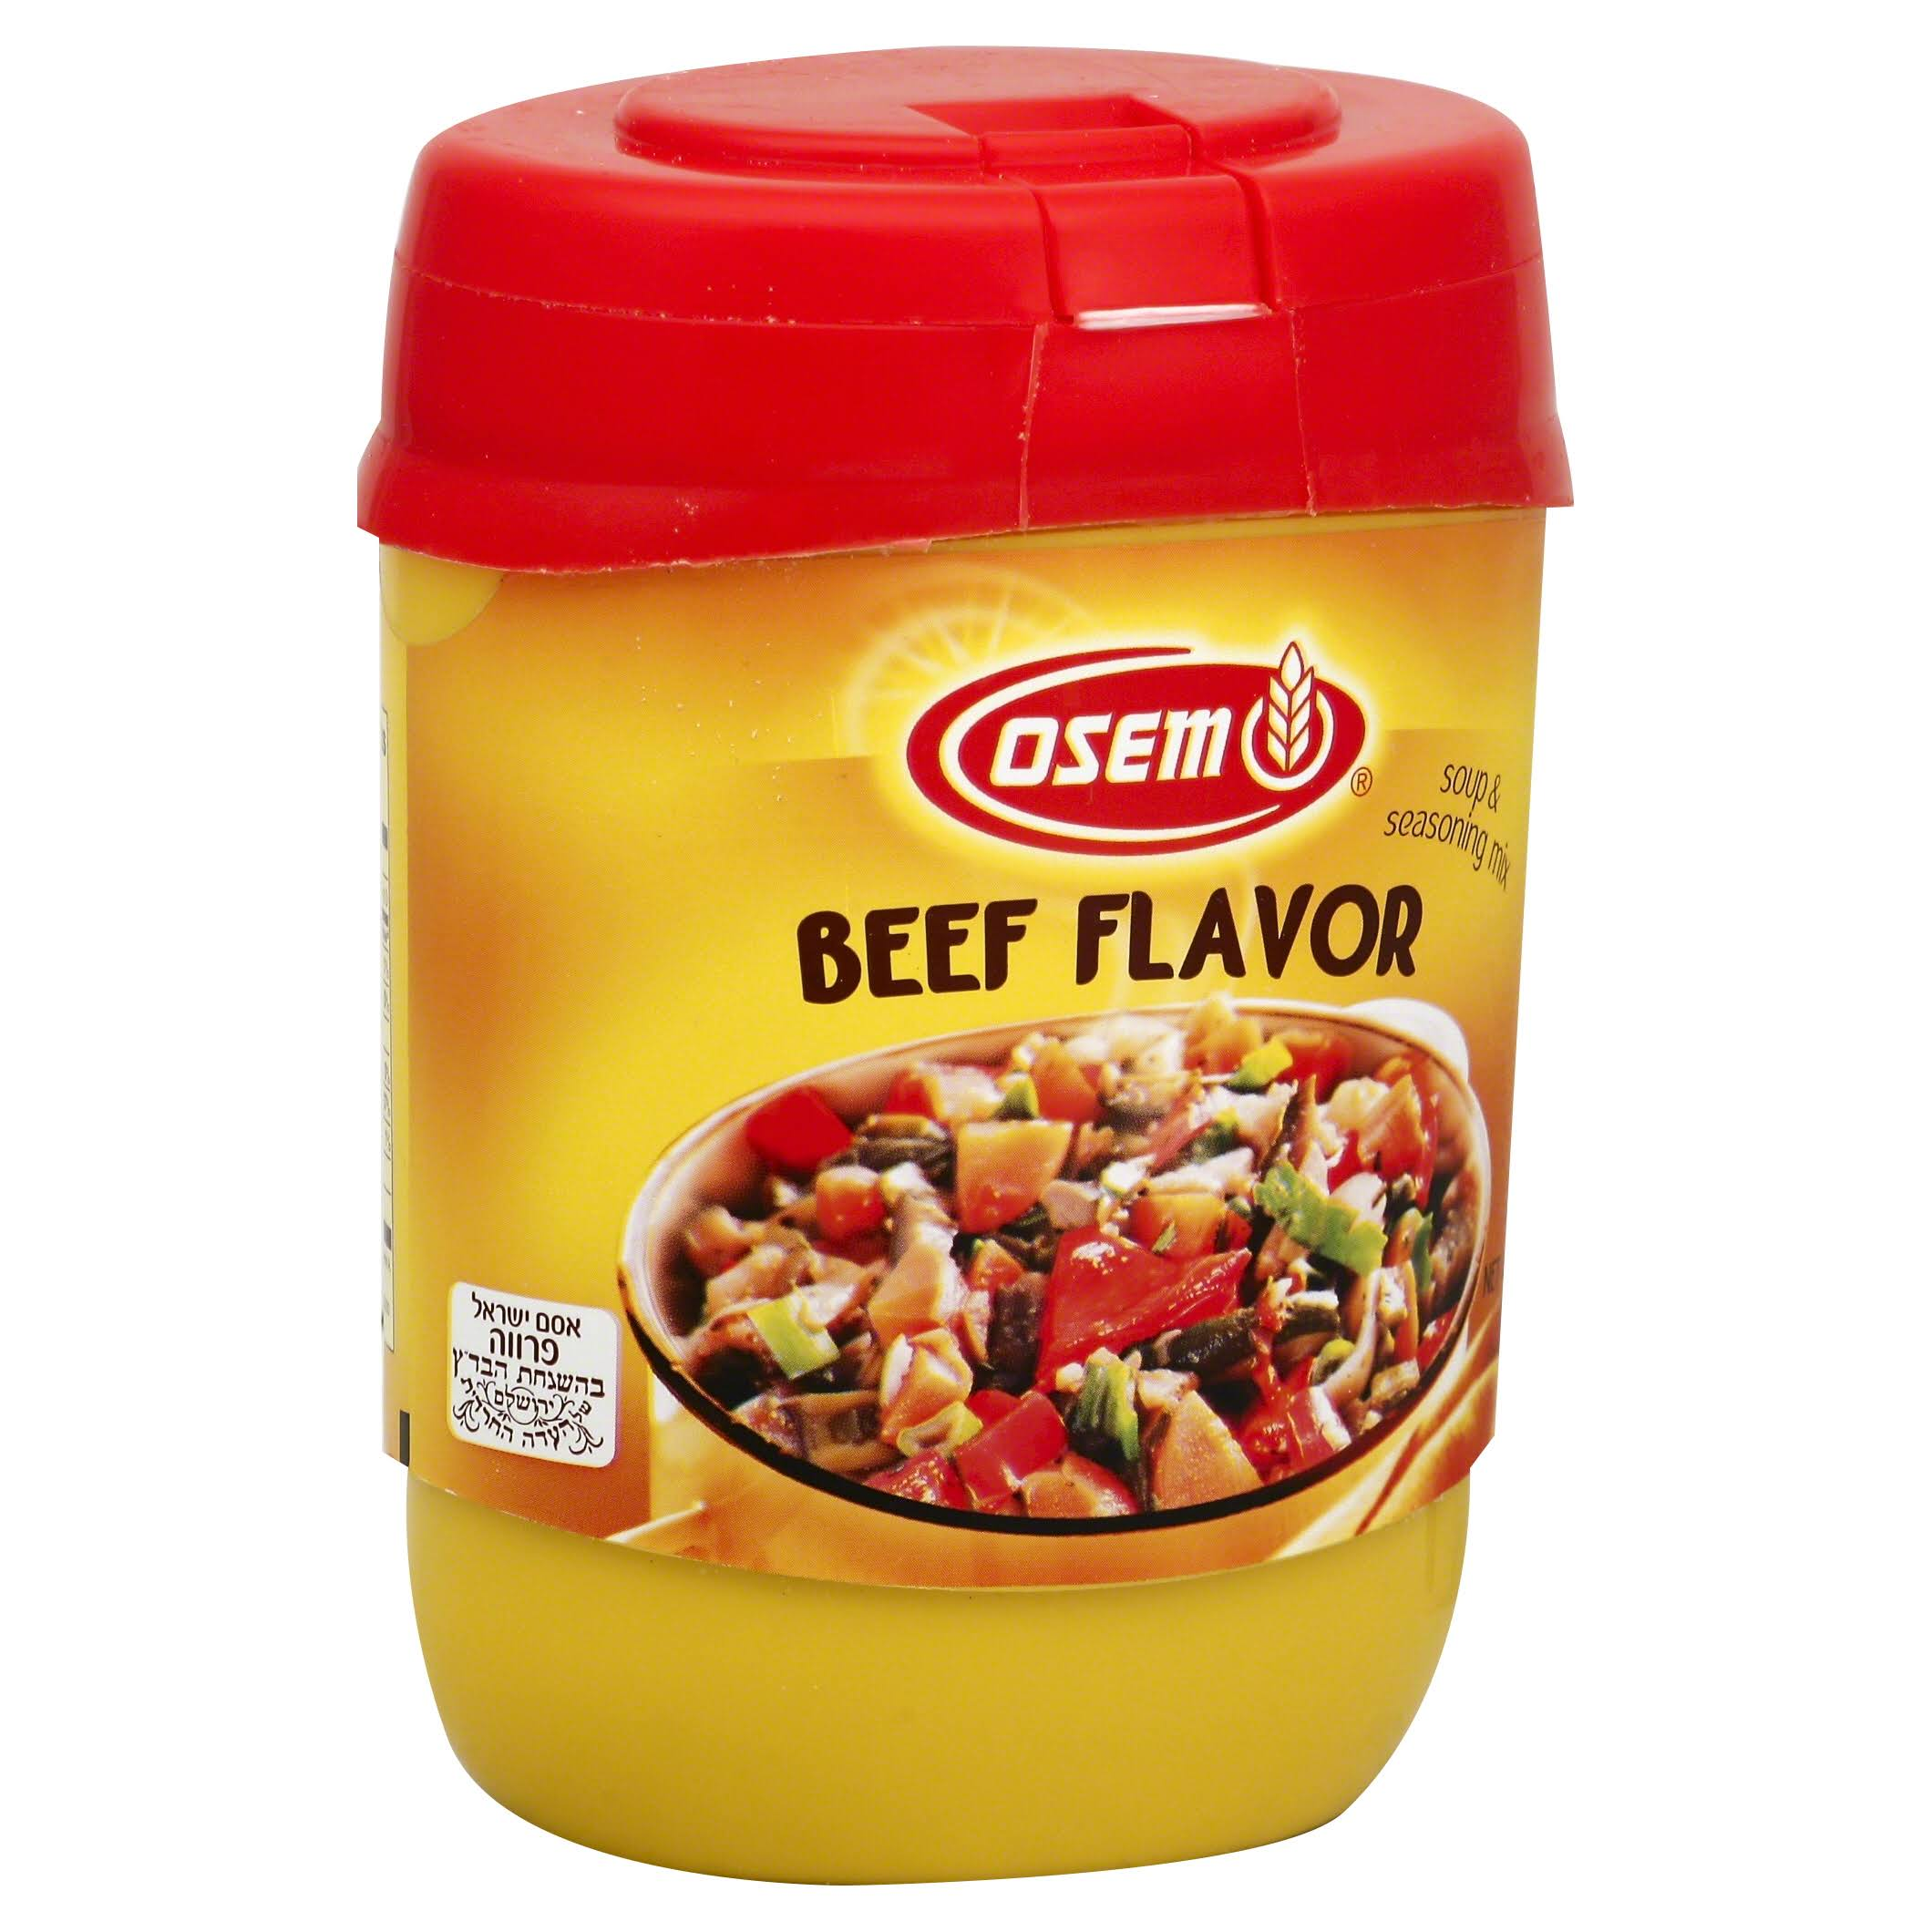 Osem Beef Flavor Soup and Seasoning Mix - 400g